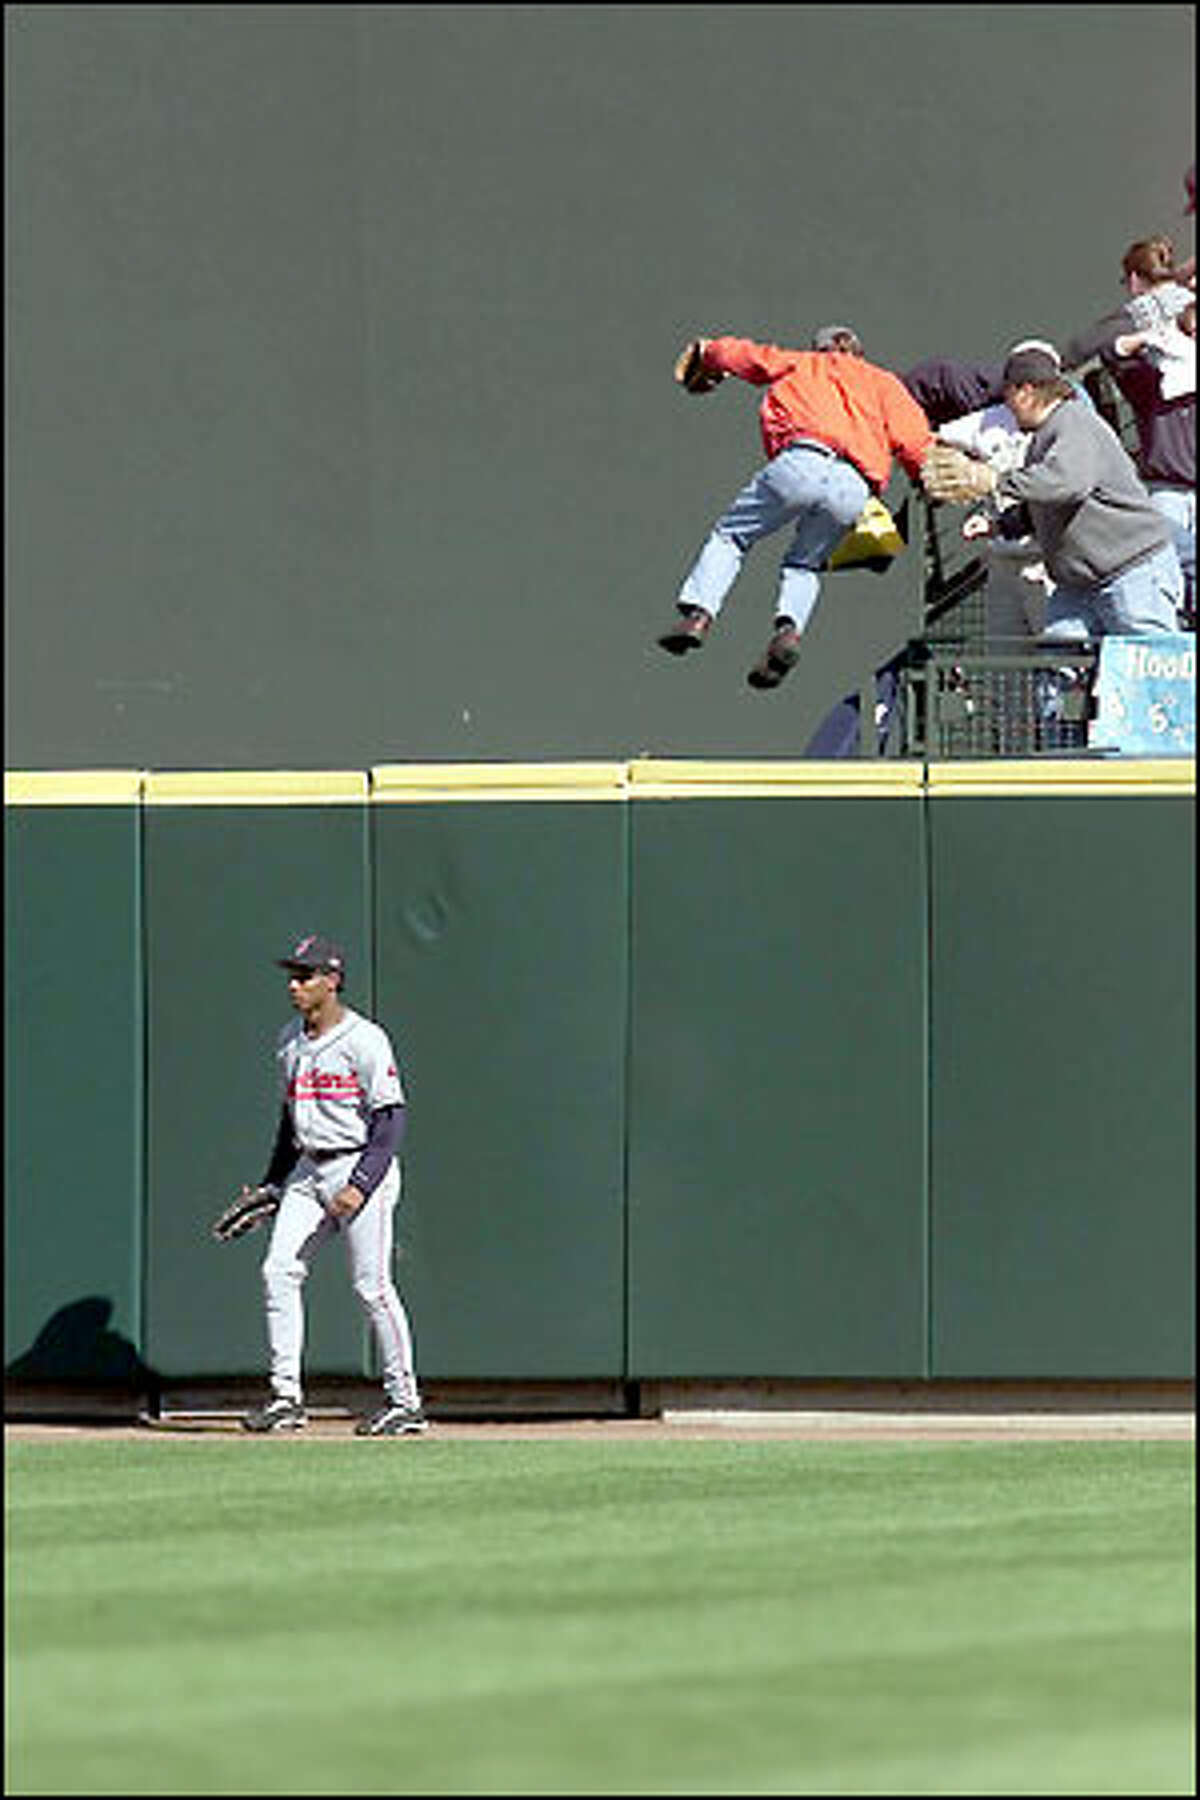 A Mariners fan jumps down from the stands to retrieve Edgar Martinez's first-inning home-run ball as Cleveland's Kenny Lofton stands by helplessly below.